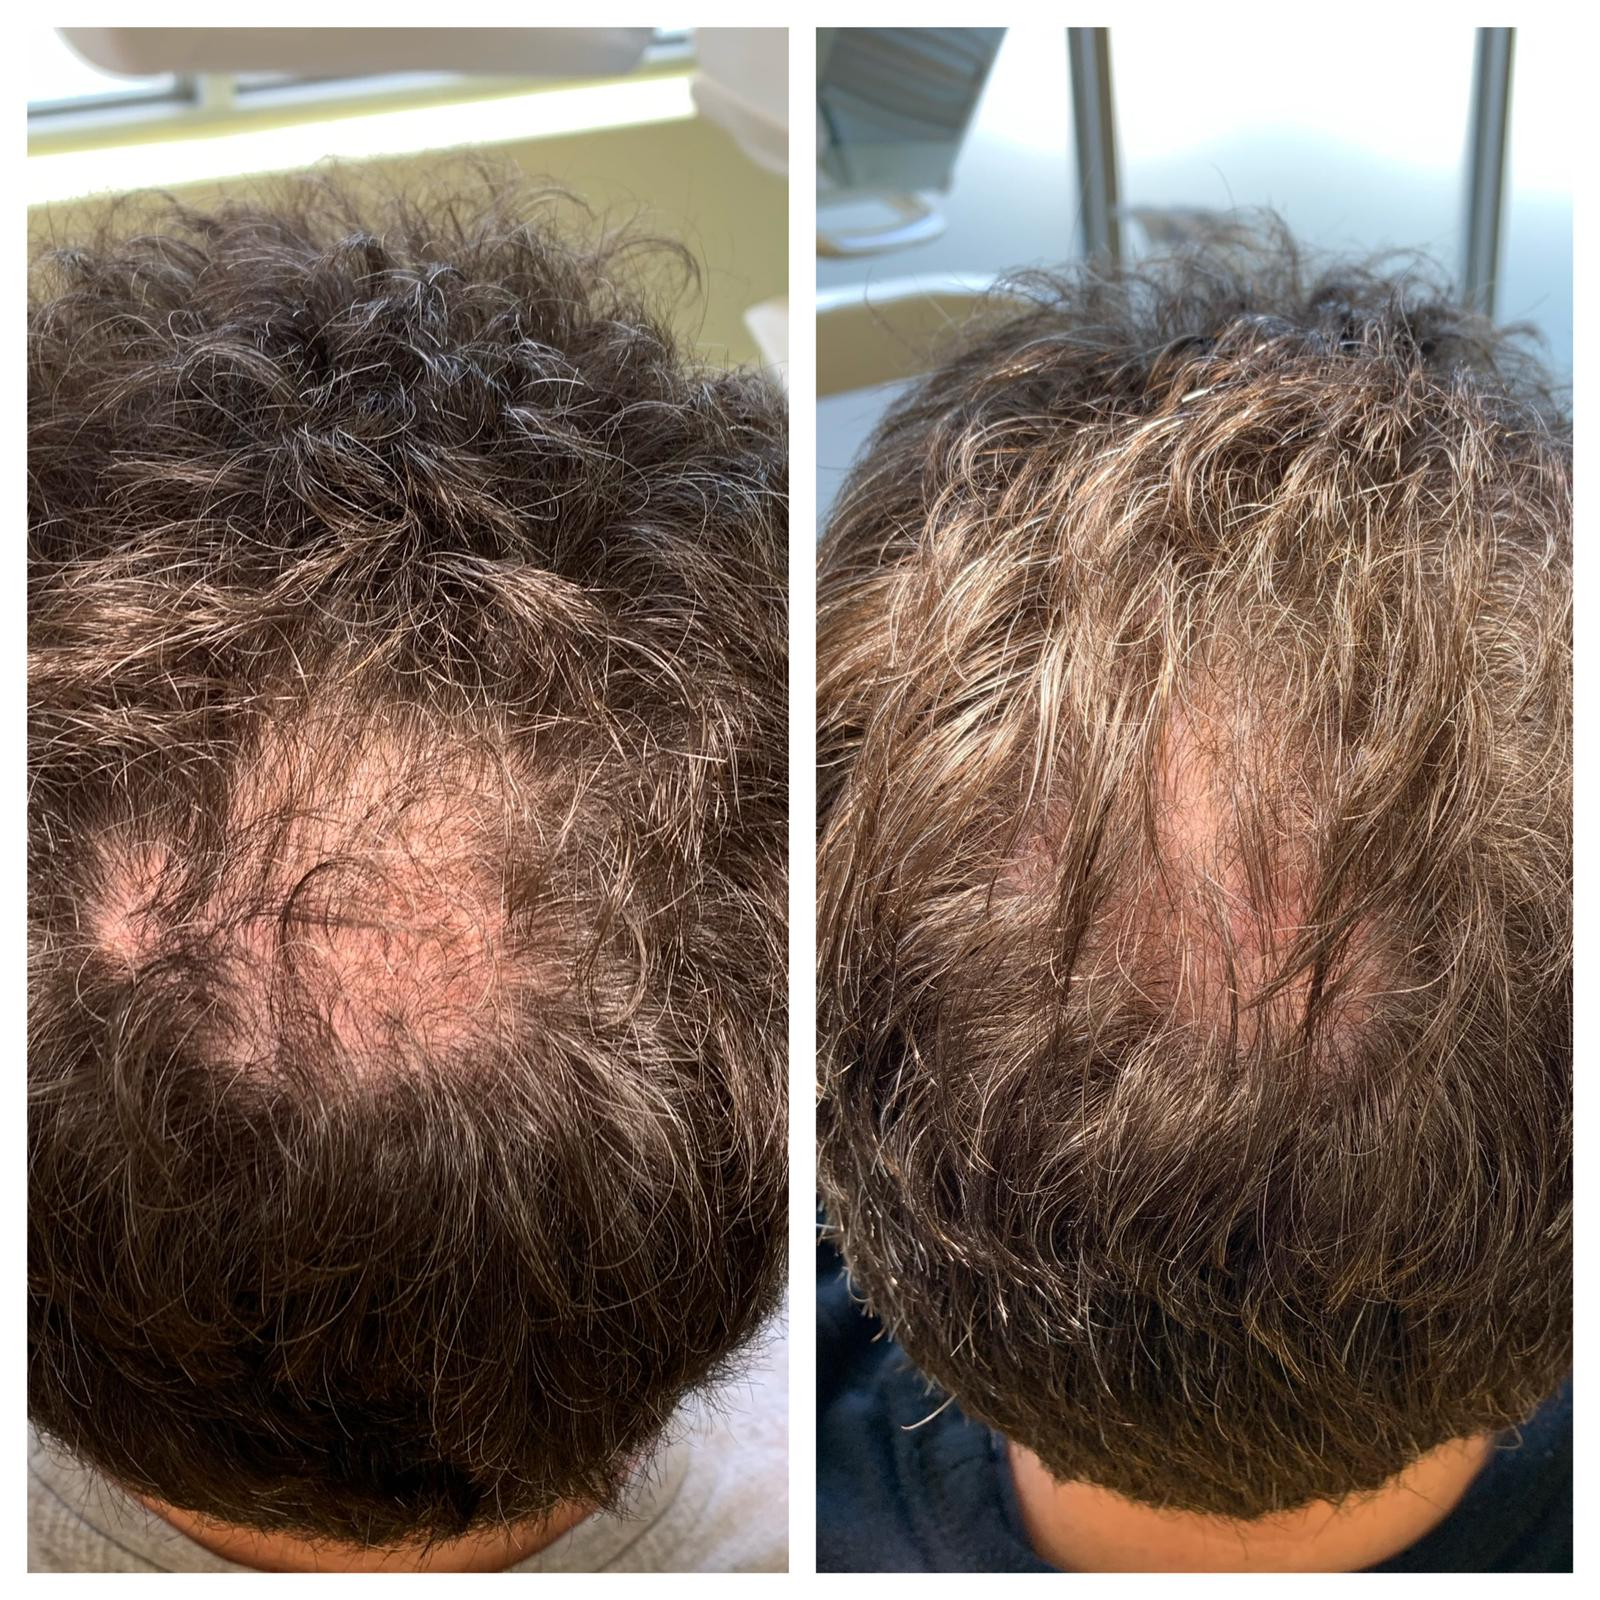 PRP Hair rejuvenation before and after